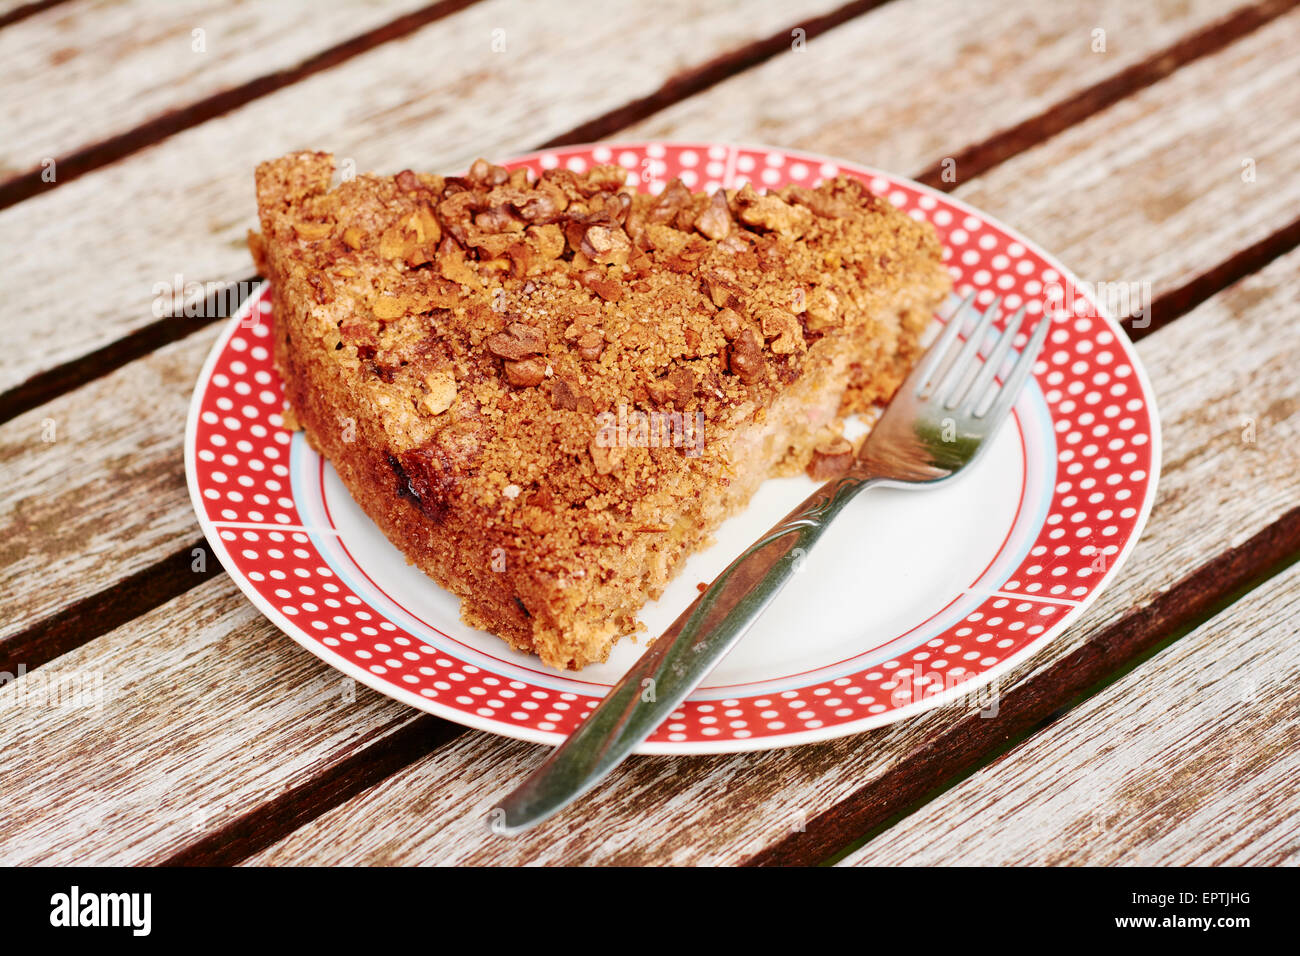 Rhubarb Coffeecake with Walnut Streusel Topping Stock Photo